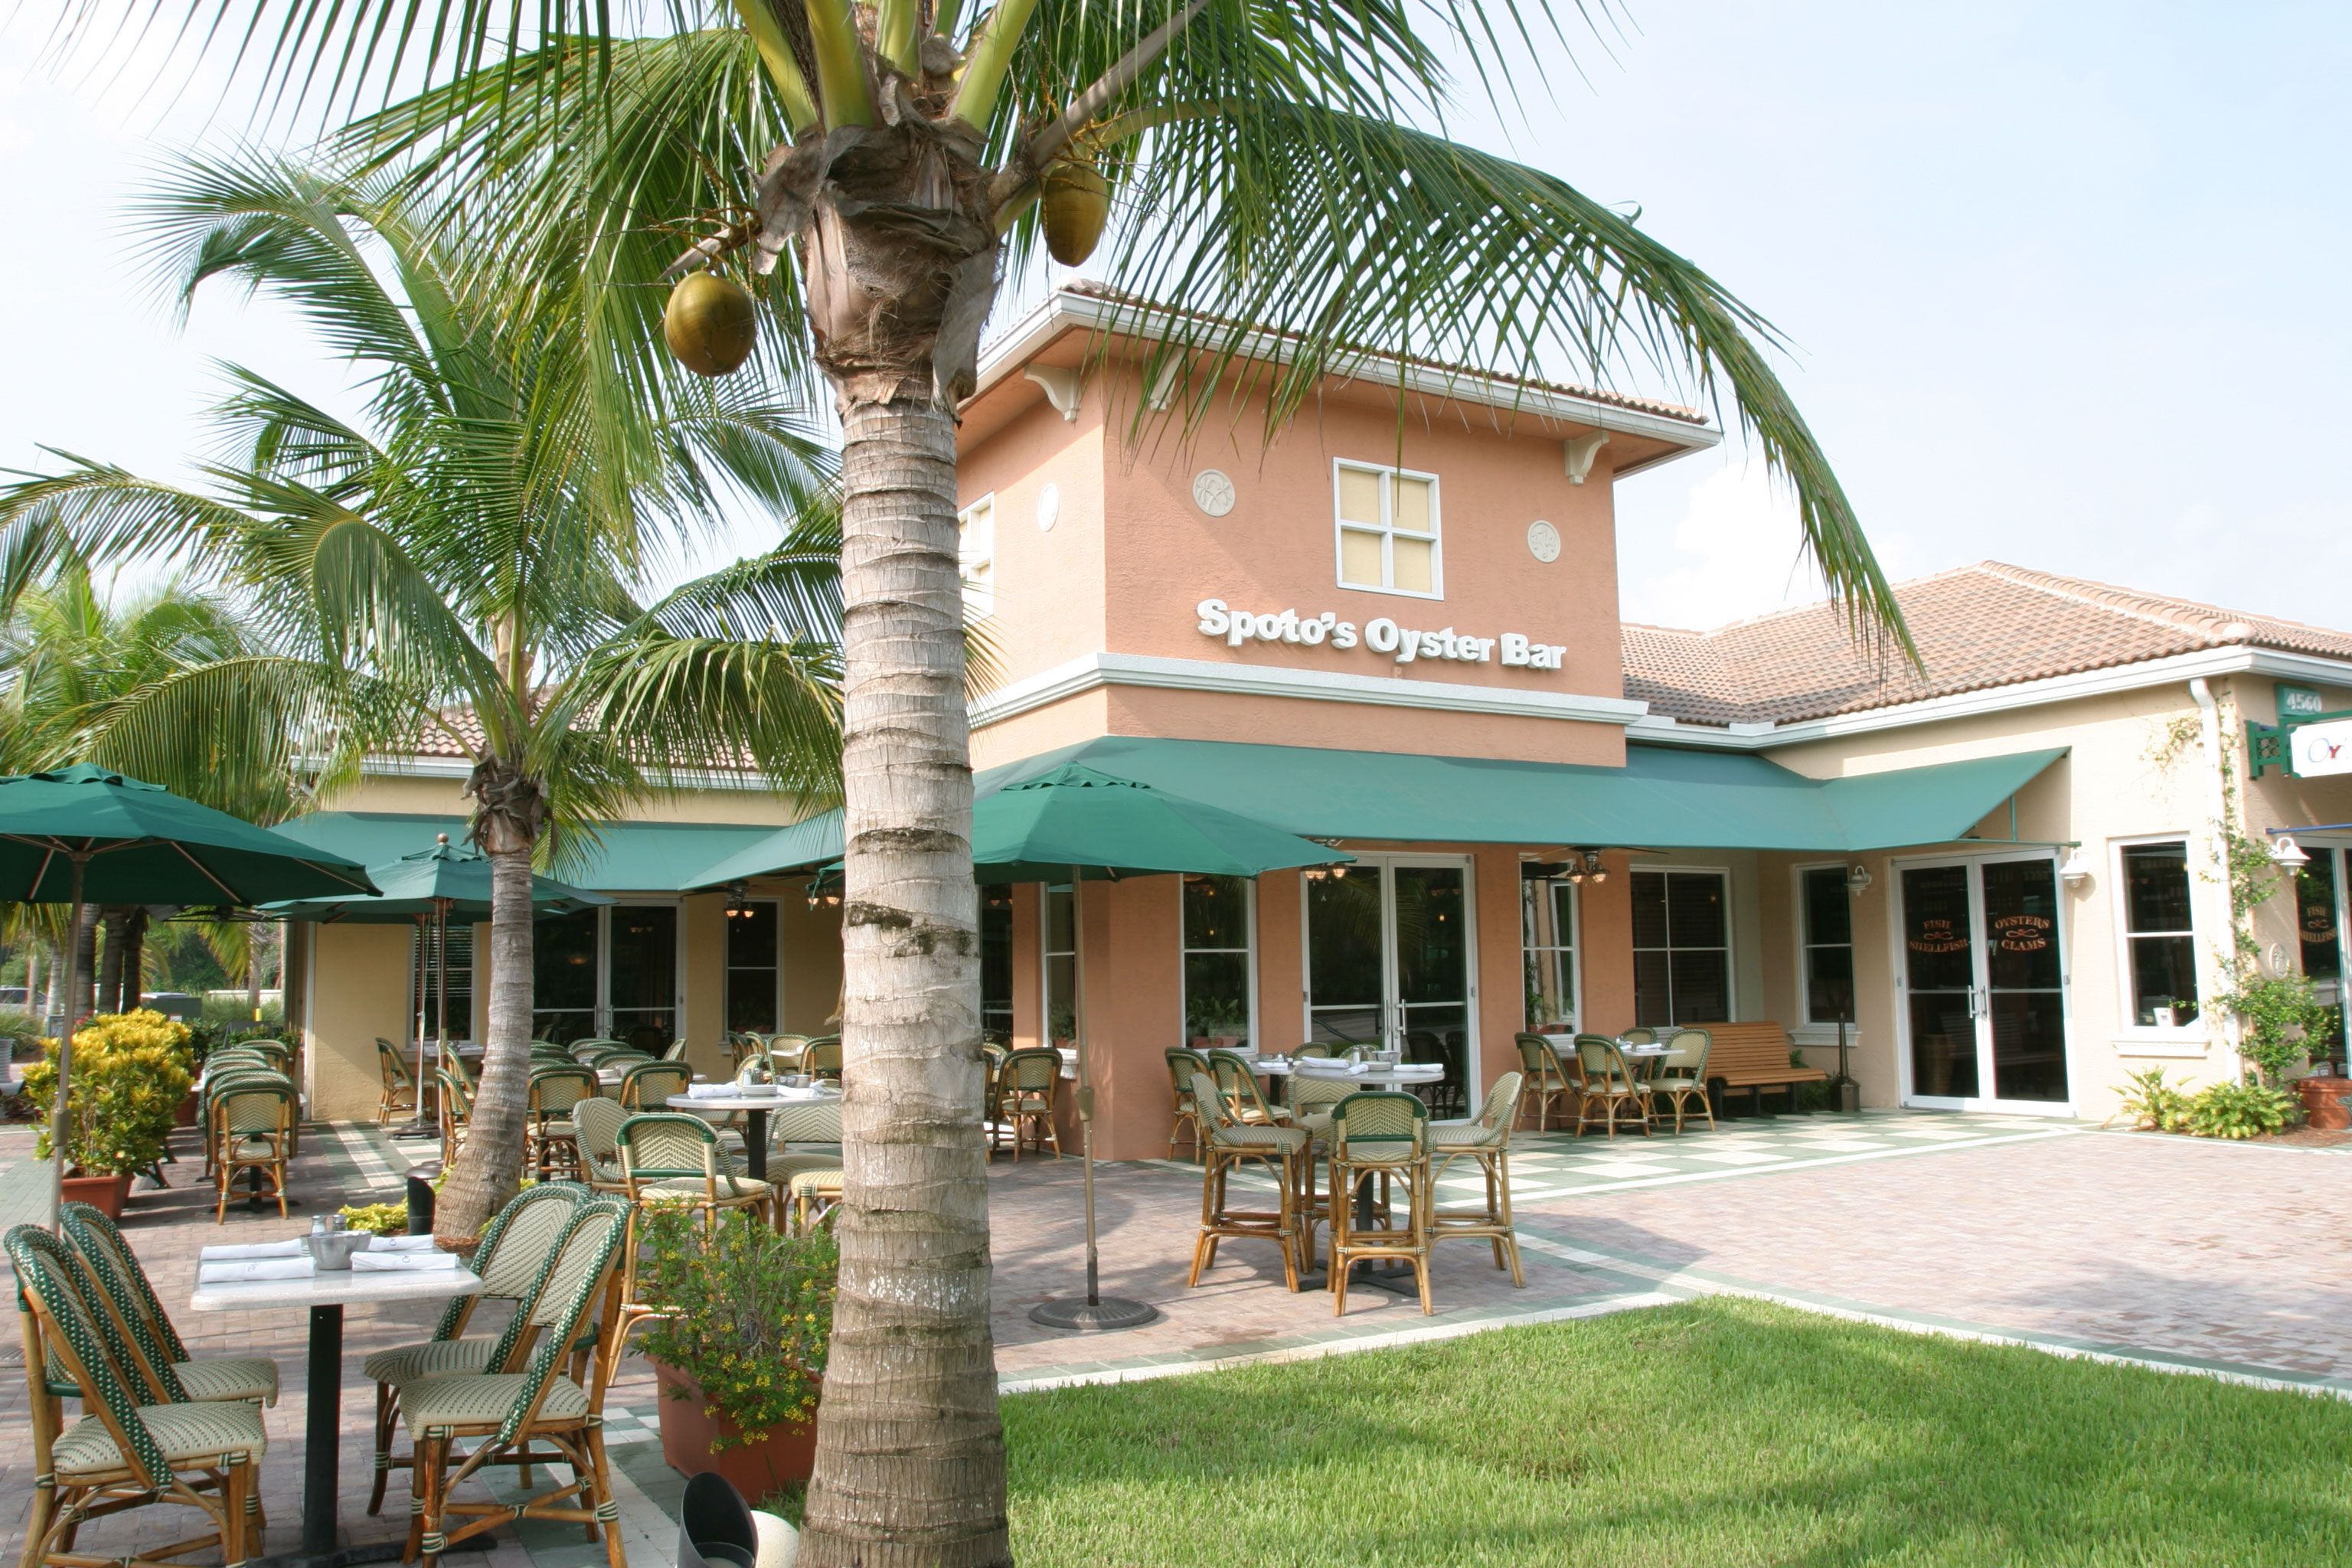 The Patio at Spoto's Oyster Bar | Palm beach, House styles